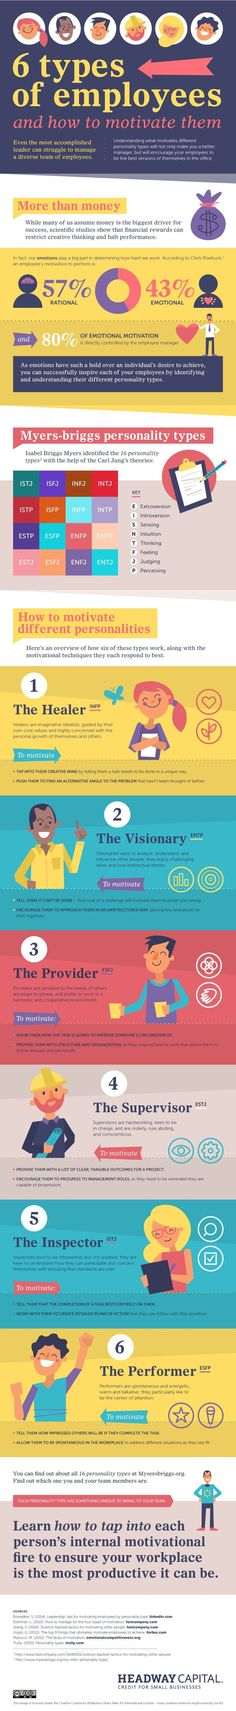 6 Types of employees and how to motivate them...